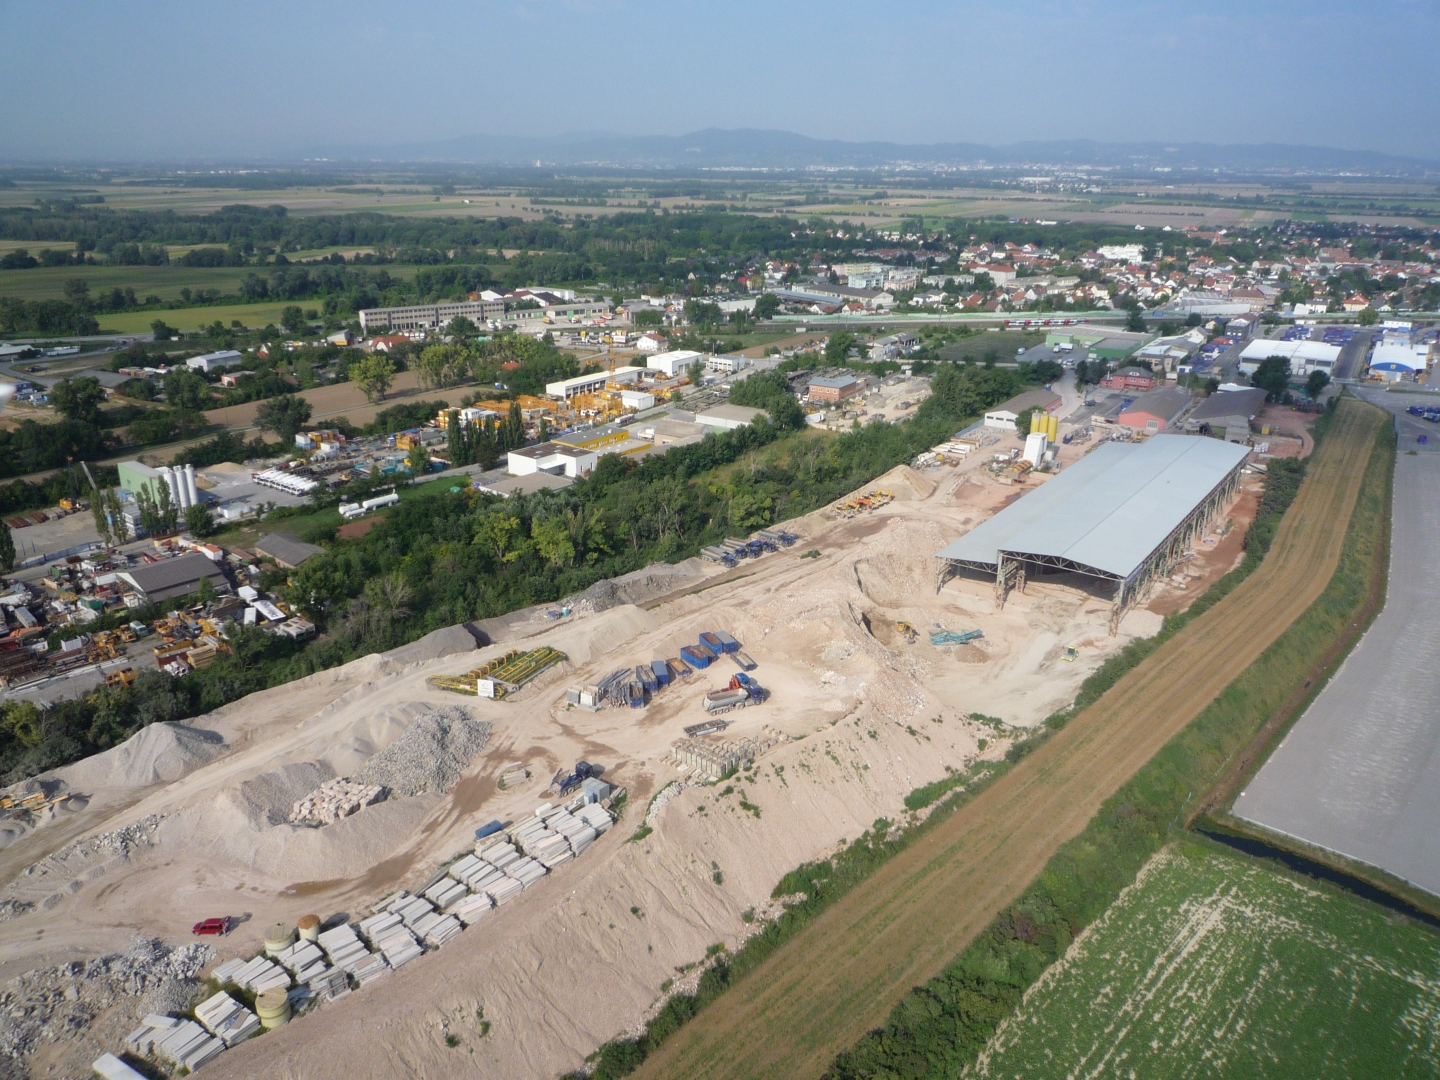 Photo: Recycling plant Himberg: Aerial shot of the vast construction facilities with halls and storage areas for residual construction waste sorted by grades.